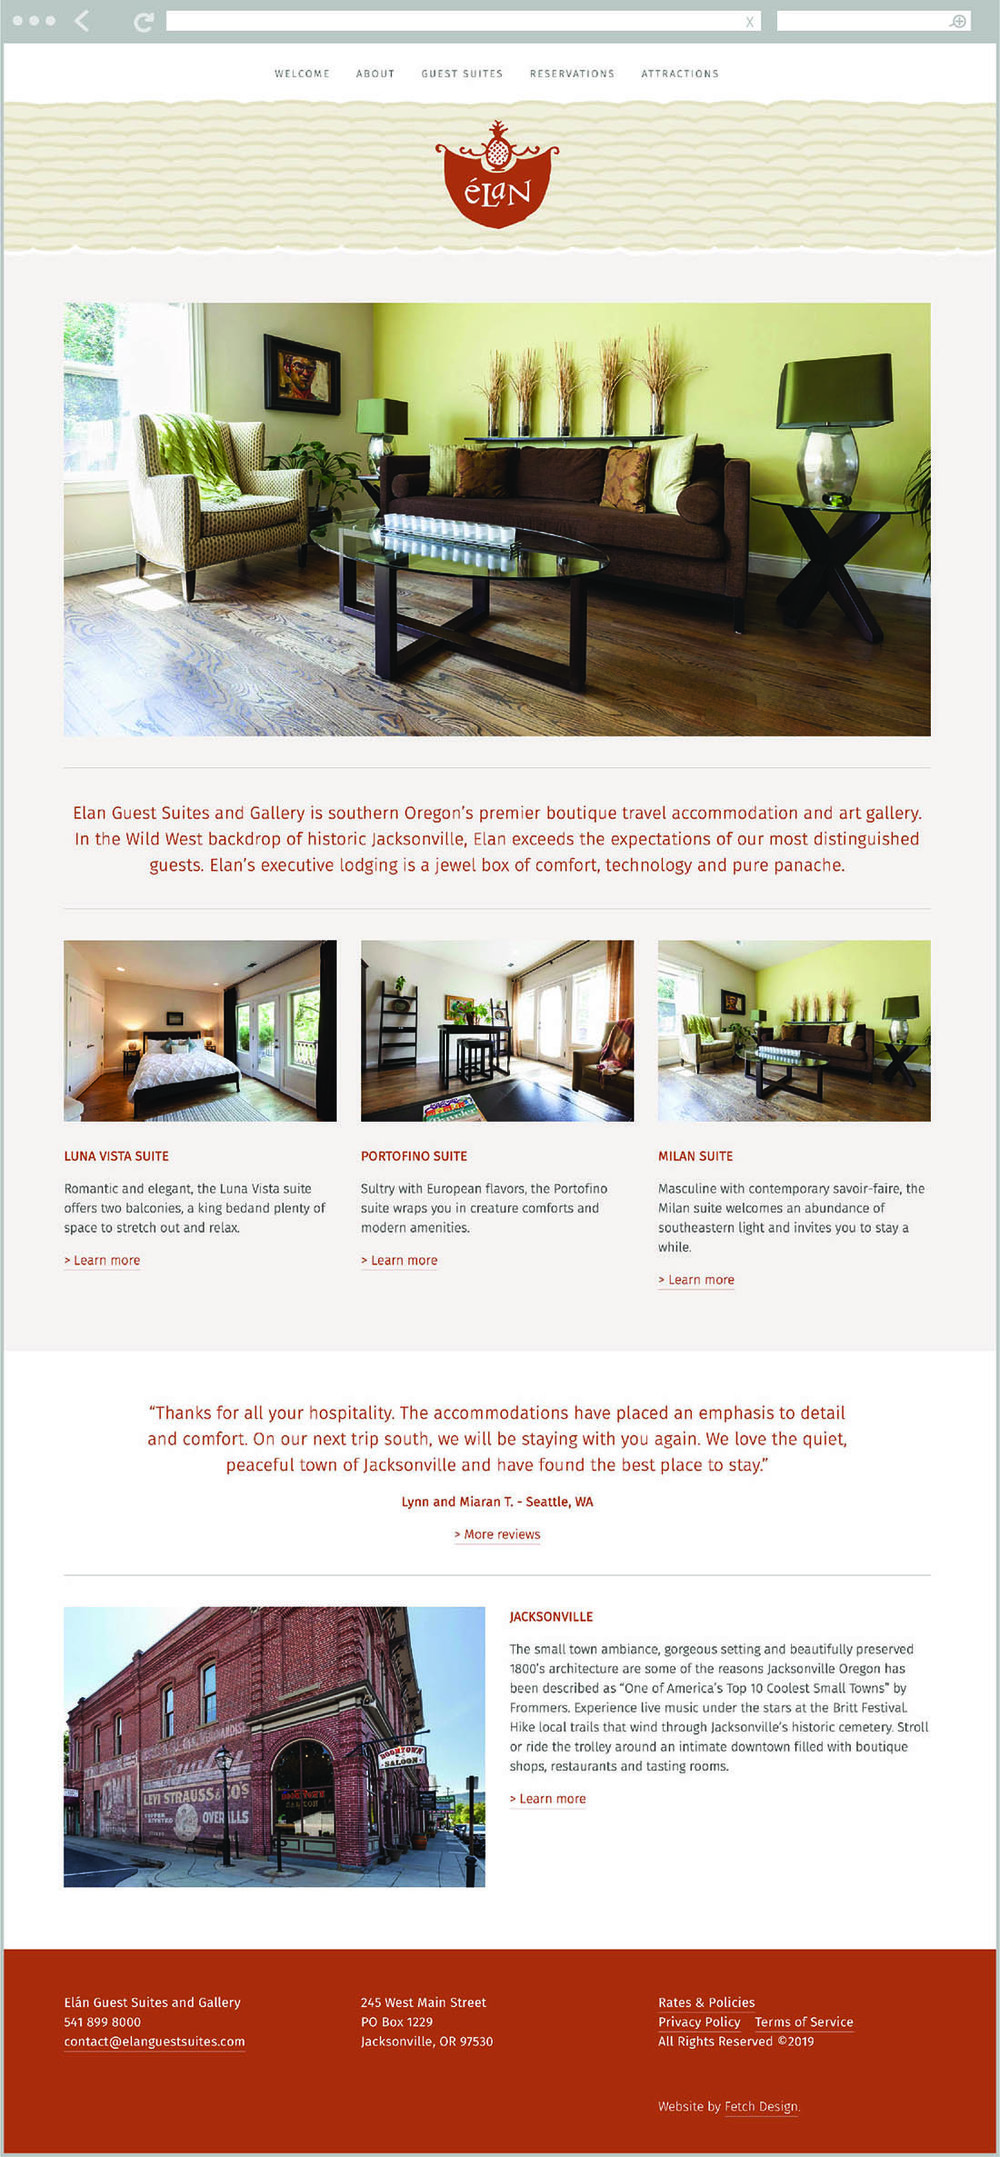 Fetch Design created the visual identity and developed the website for Elan Guest Suites, located in Jacksonville, Oregon.